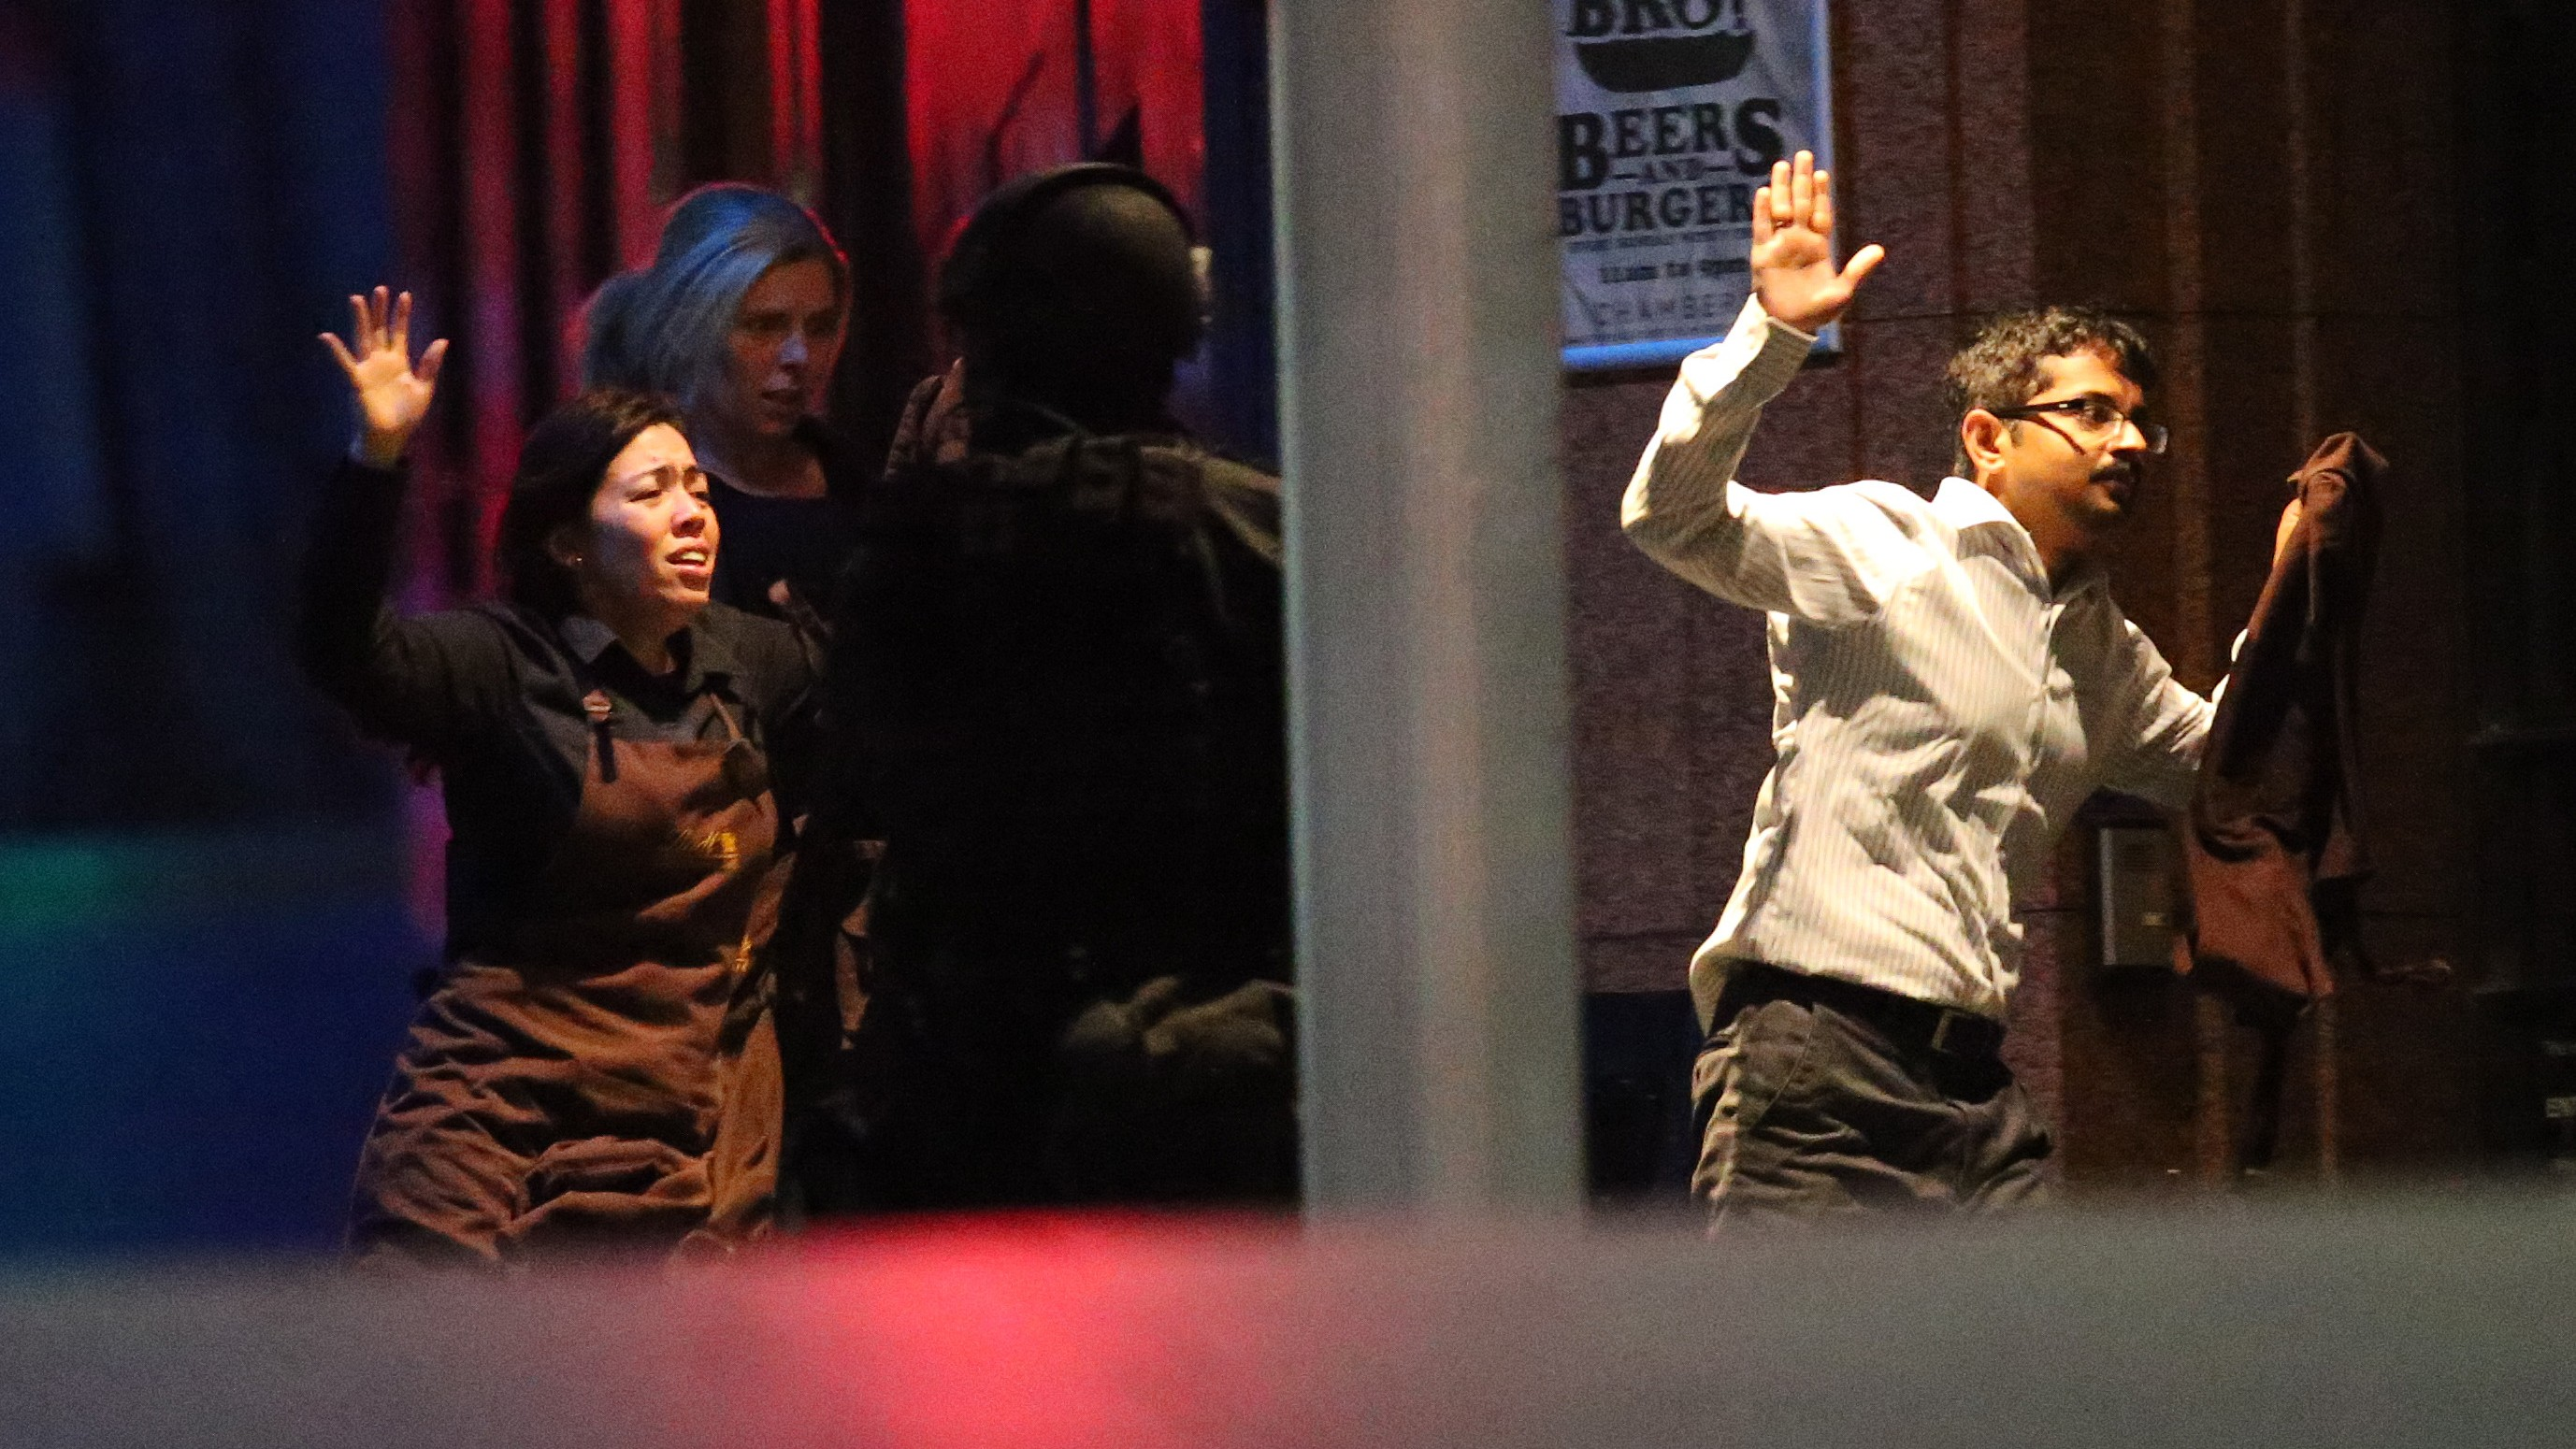 Sydney Siege Ends with Three Dead After Police Storm Café